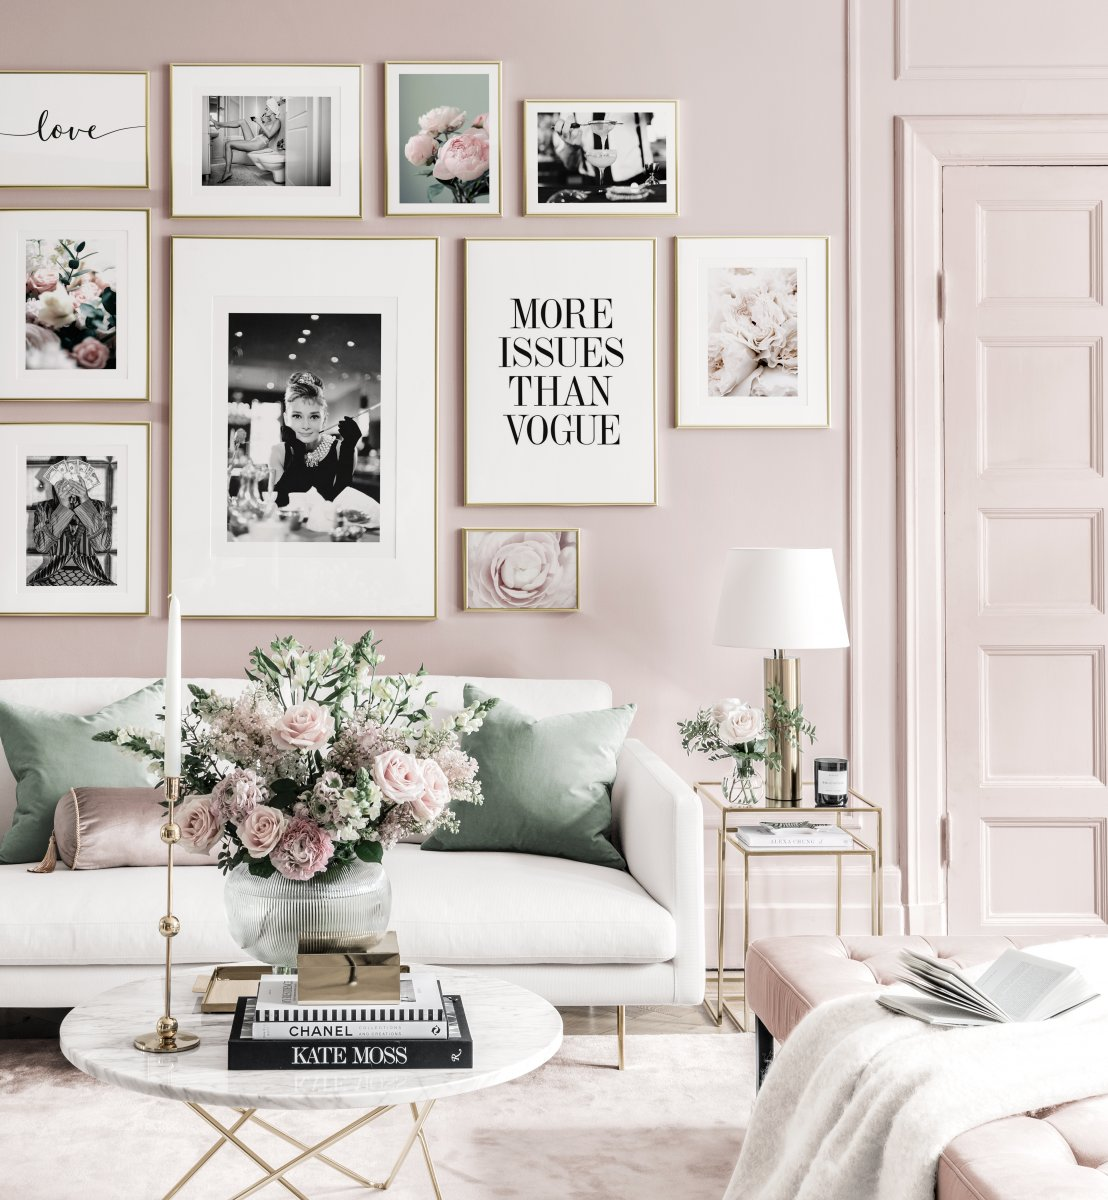 Fashionable gallery wall bestselling posters pink interior golden frames